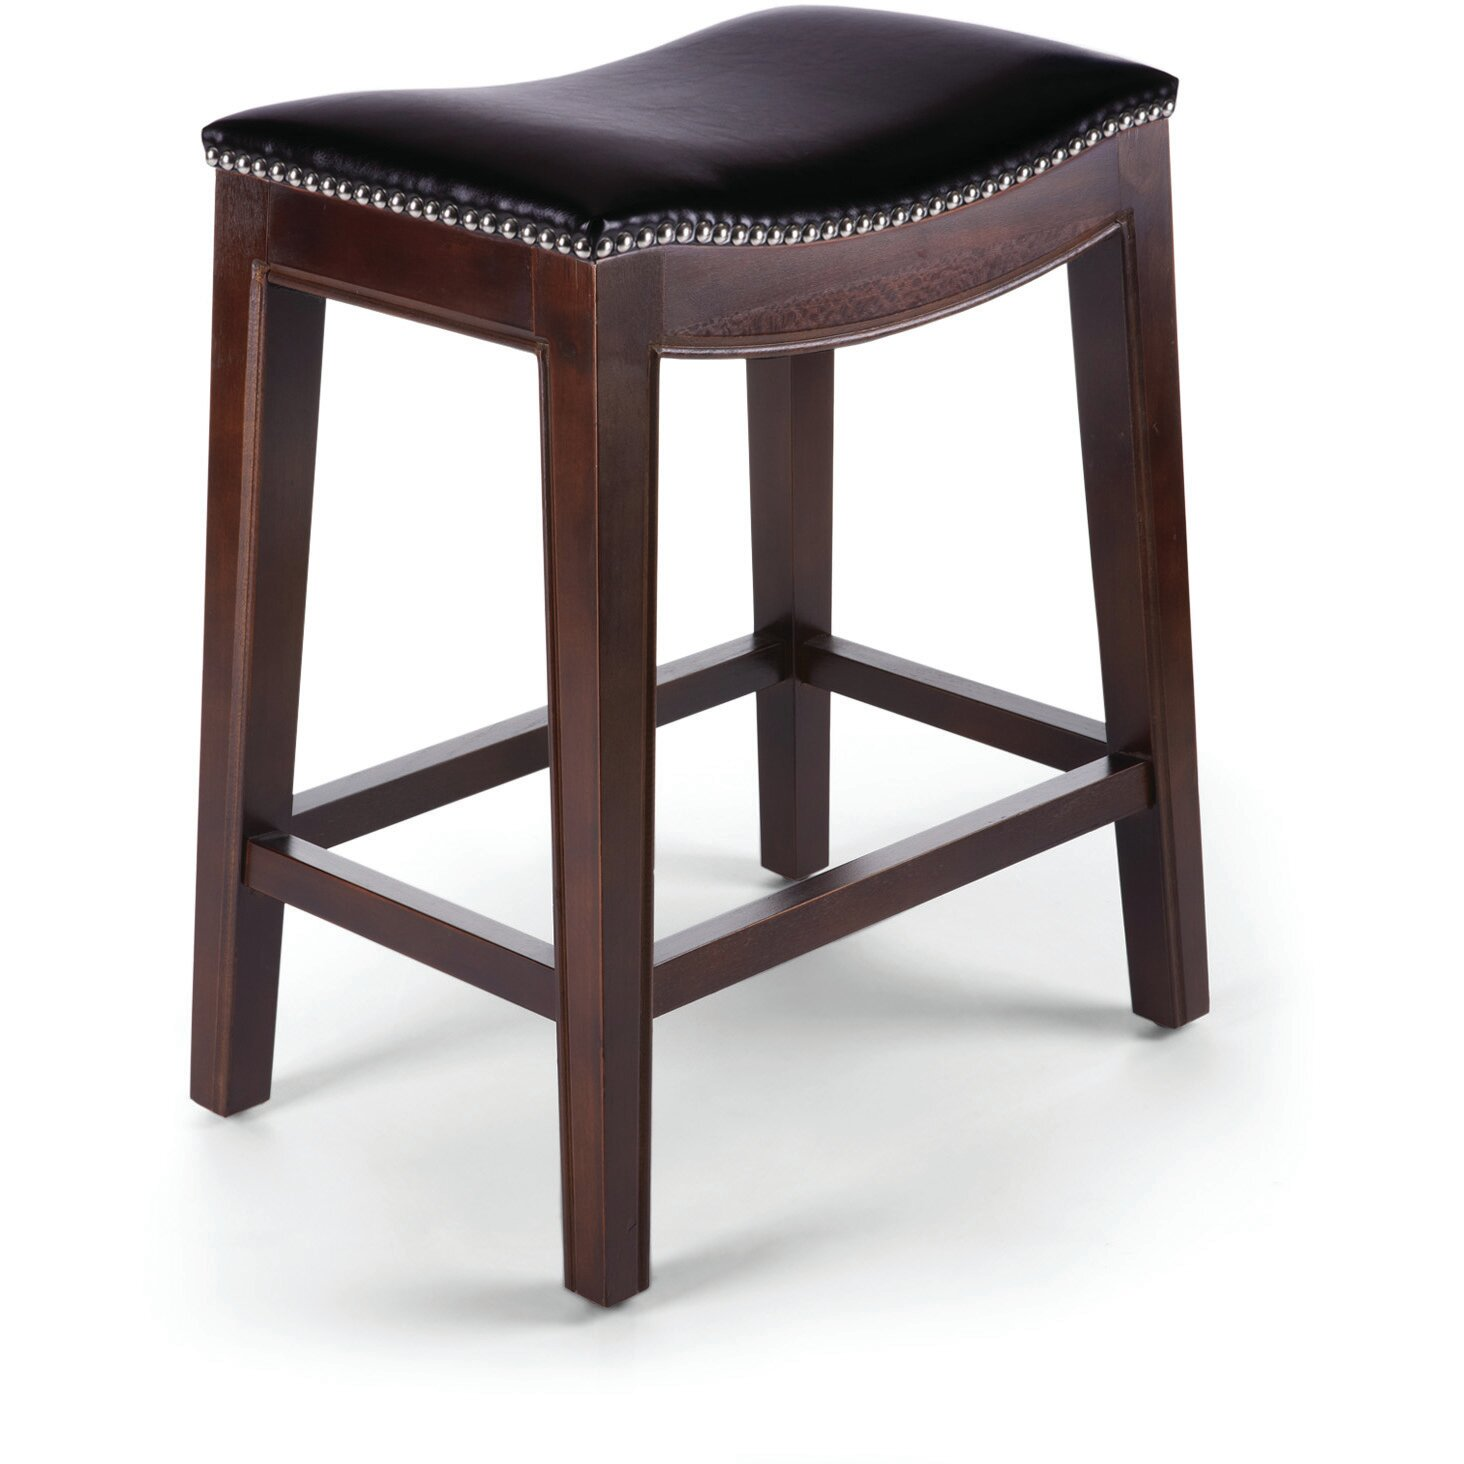 Just Cabinets Bella 24quot Bar Stool with Cushion amp Reviews  : Bella 24 Bar Stool with Cushion from www.wayfair.com size 1464 x 1464 jpeg 189kB